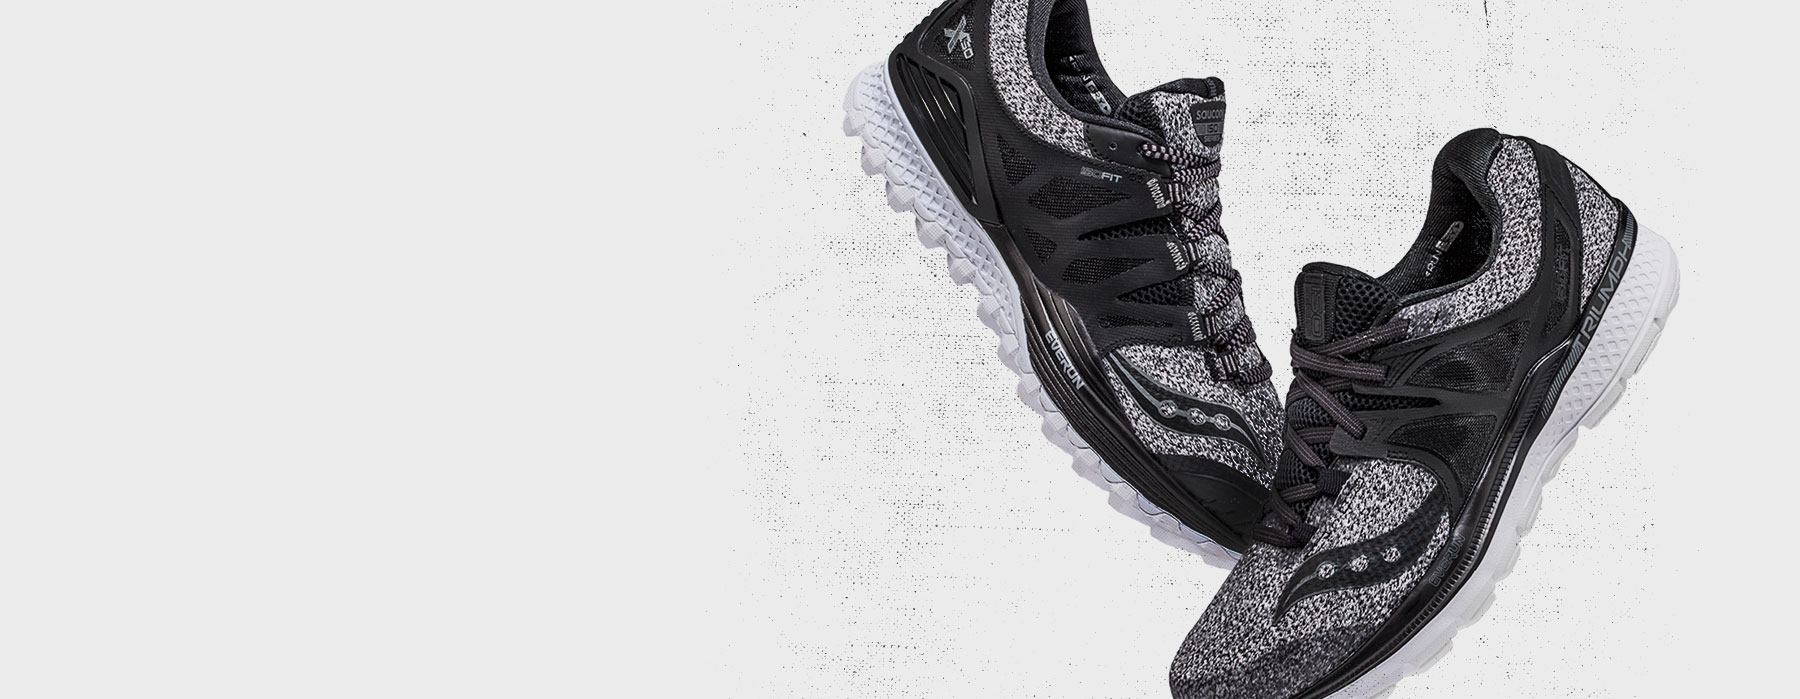 Saucony Triumph ISO3 sneakers in marled gray.